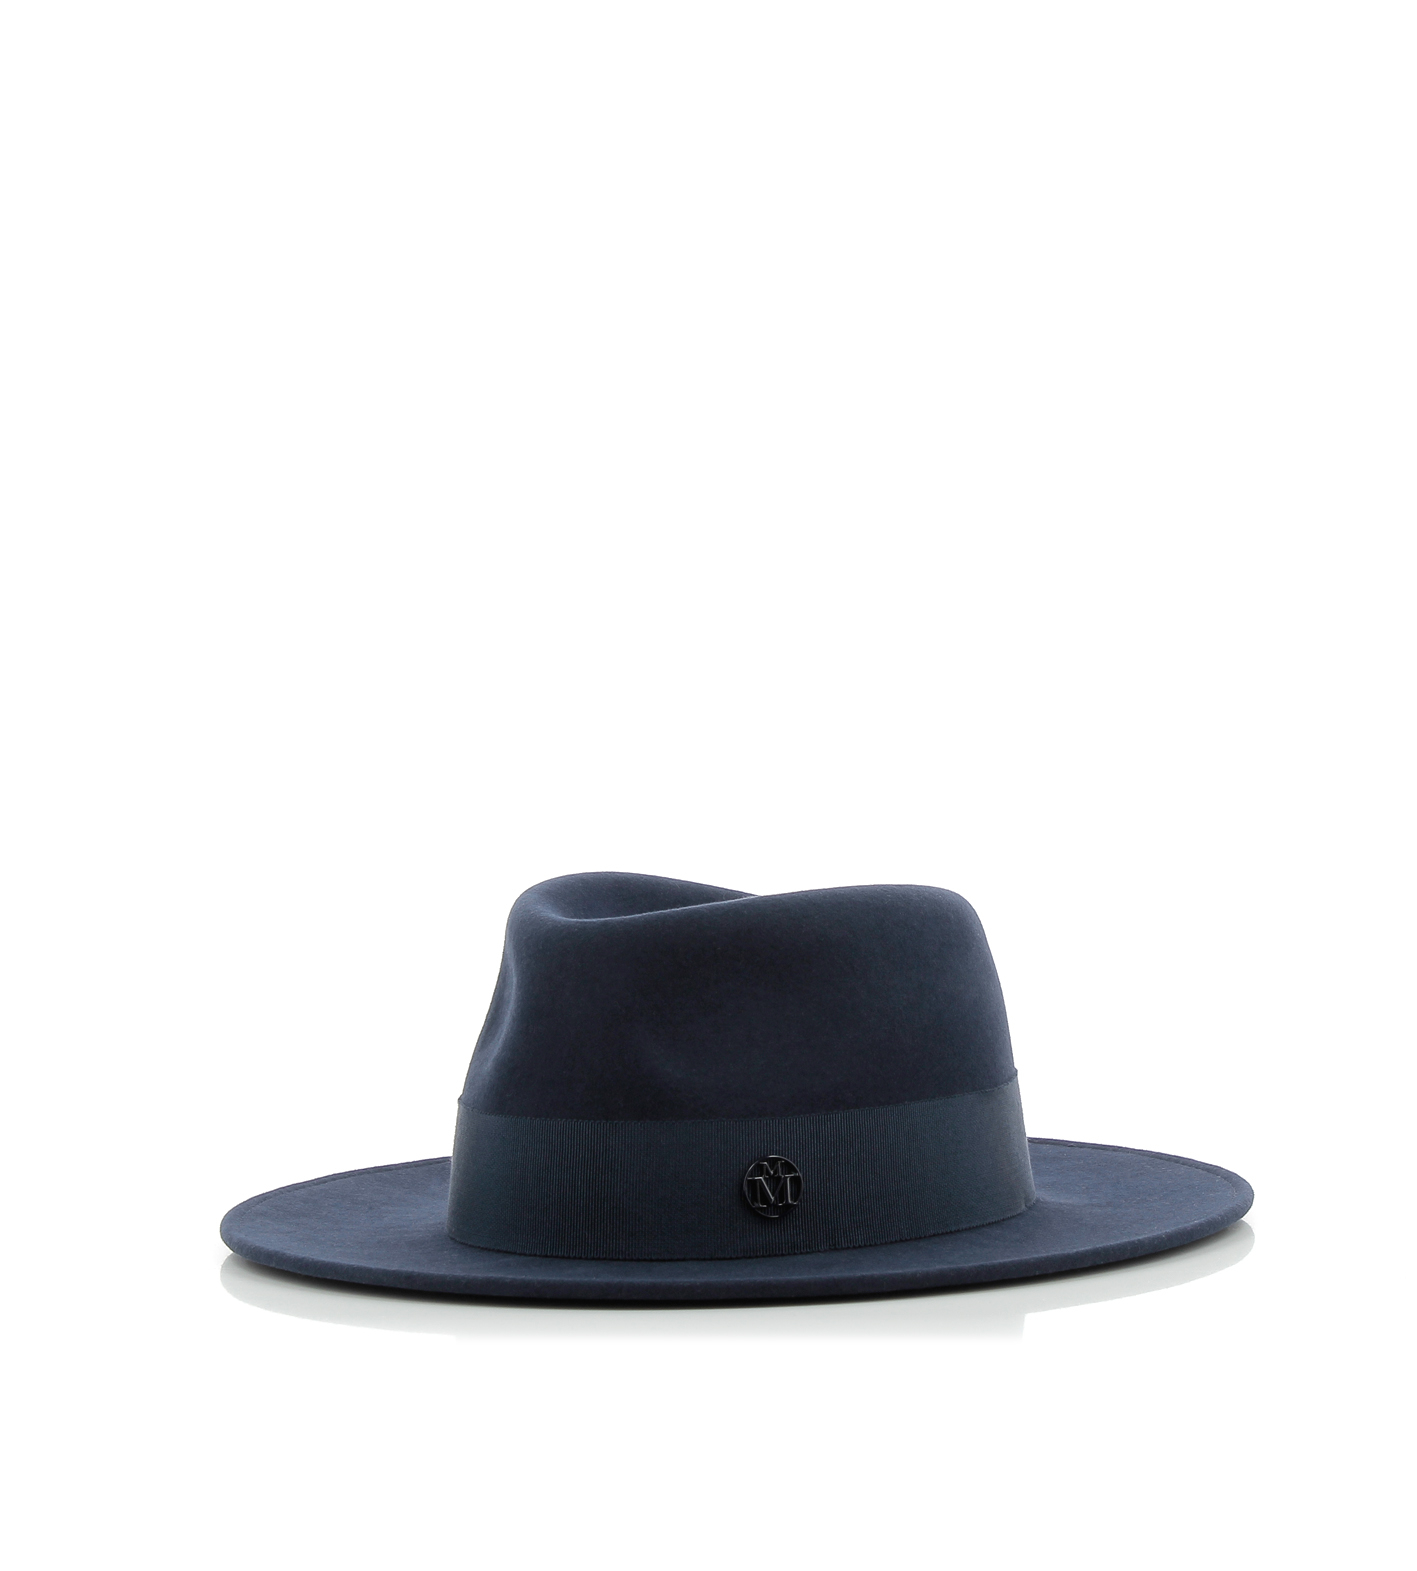 Lyst maison michel thadee hat in black for Maison michel